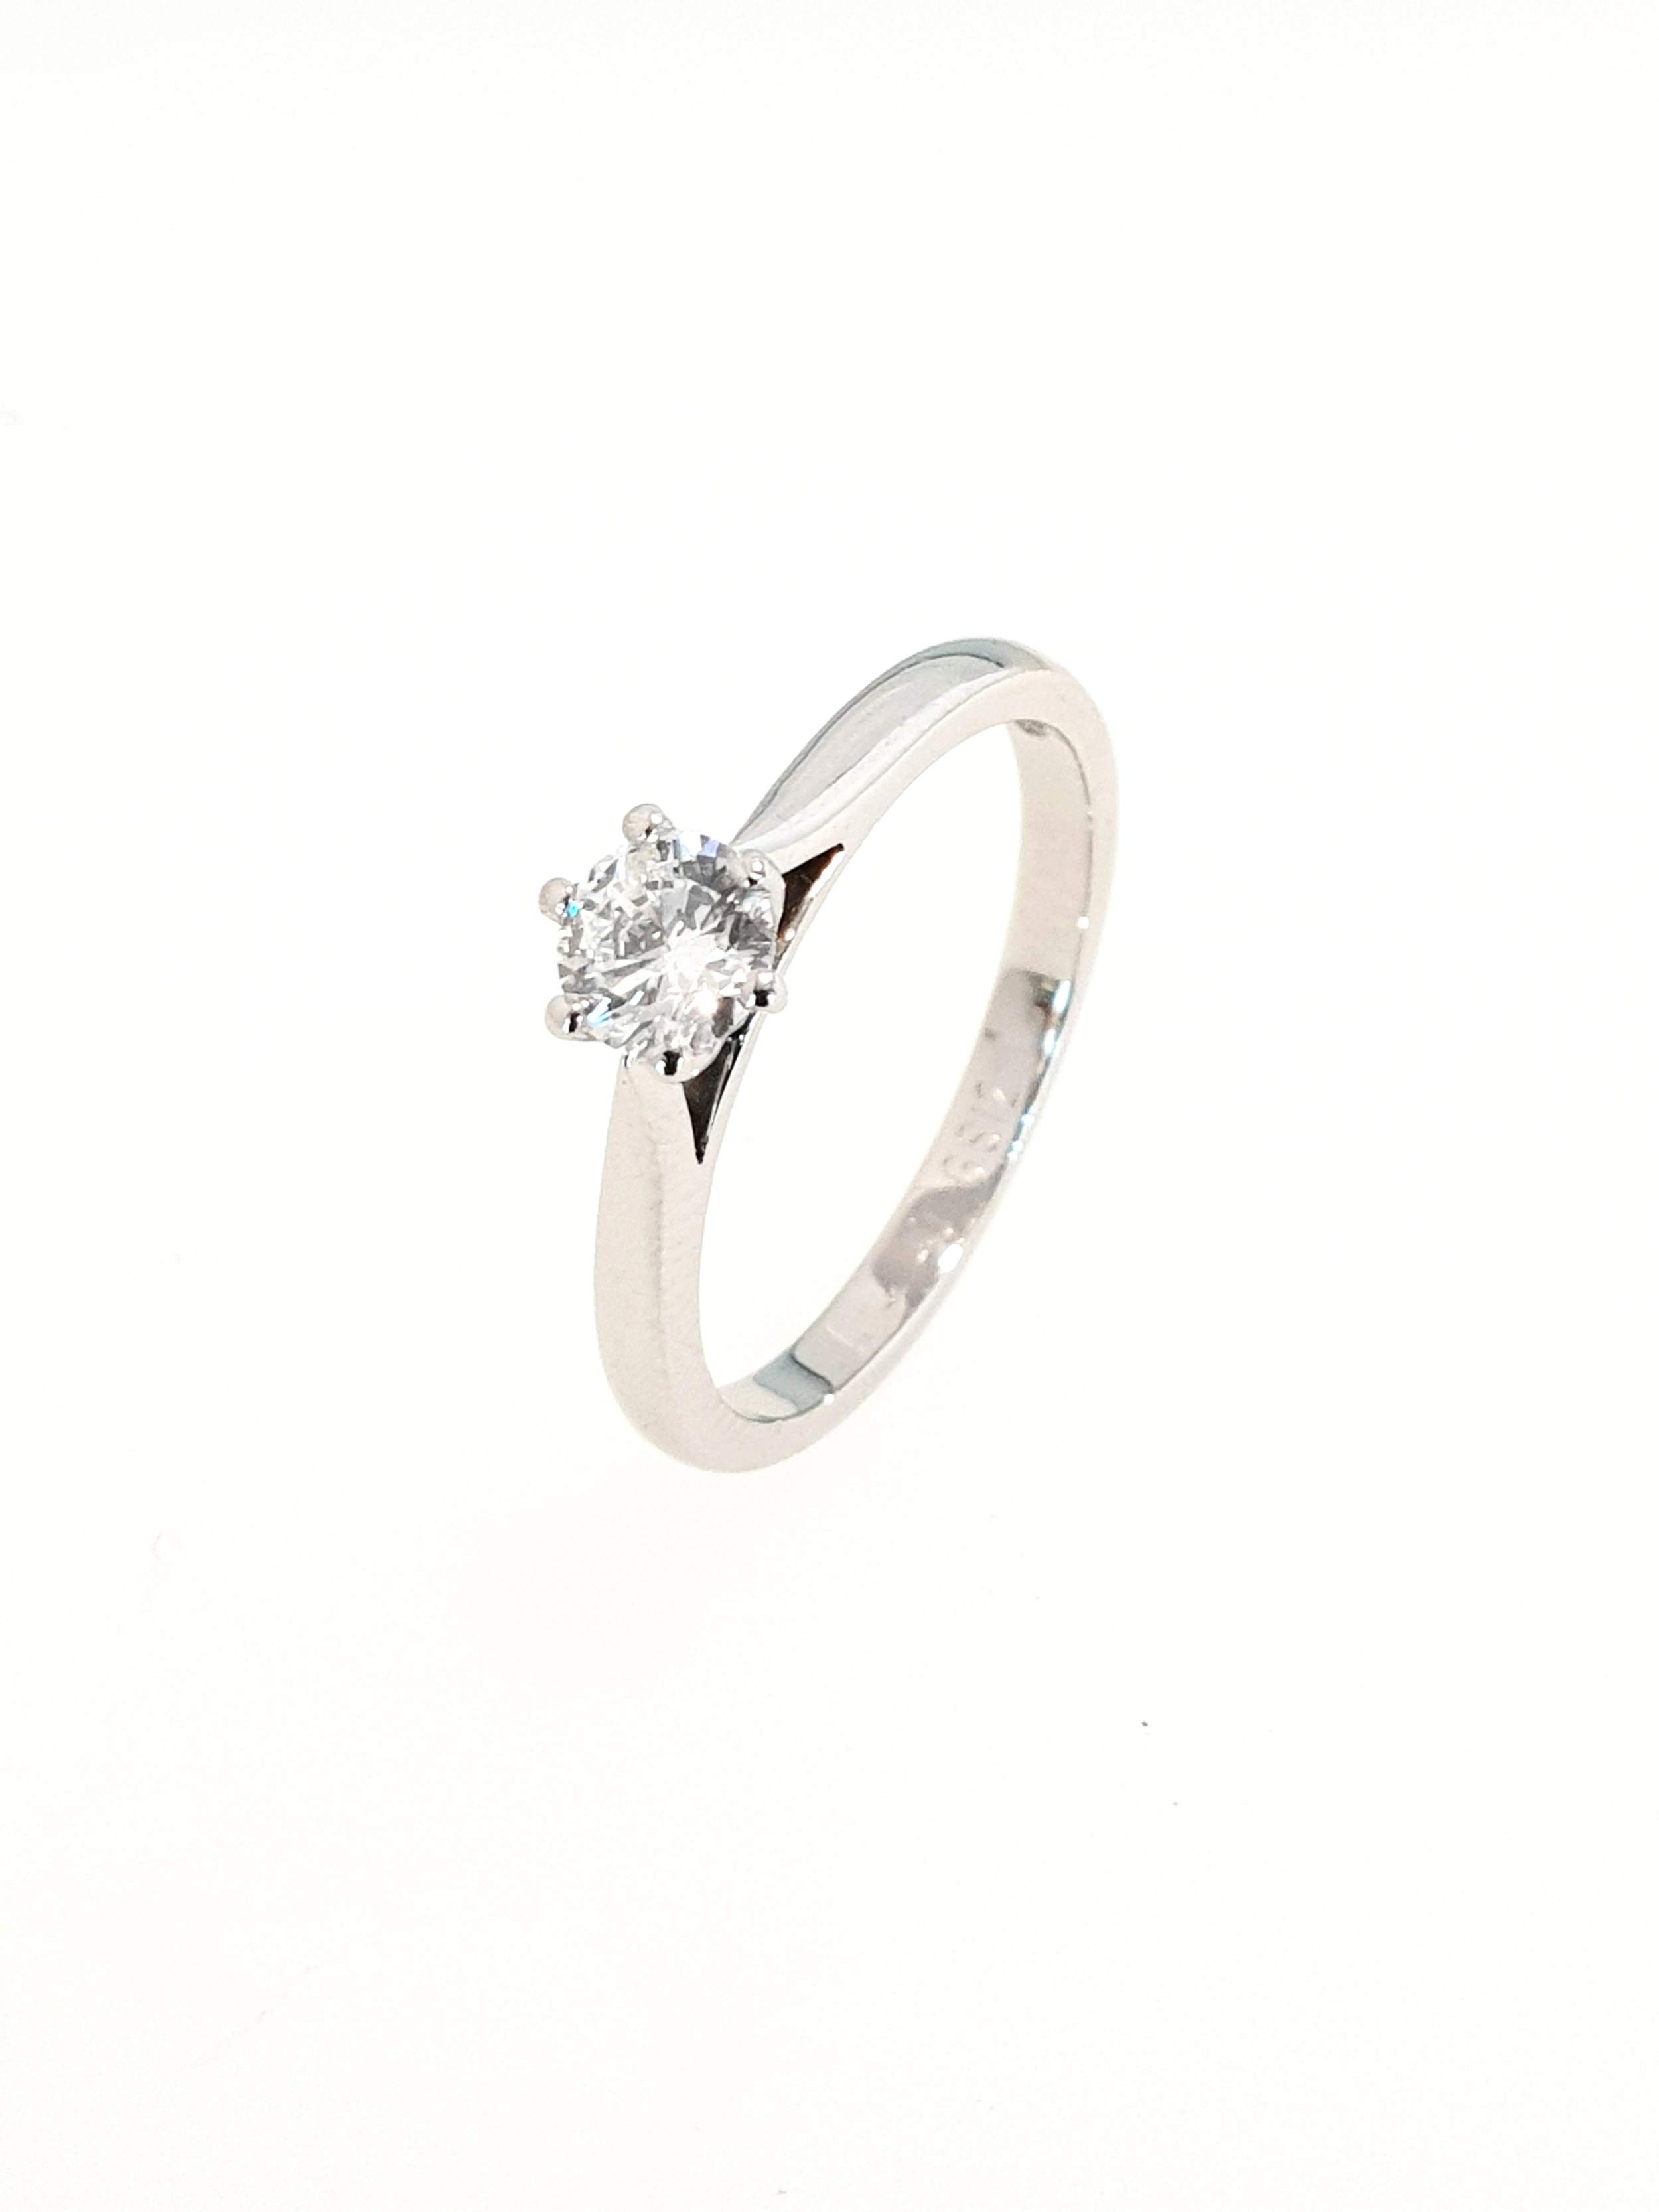 Platinum Diamond Ring, 6 Claw  .40ct, G, Si2  Stock Code: N8923  £1850